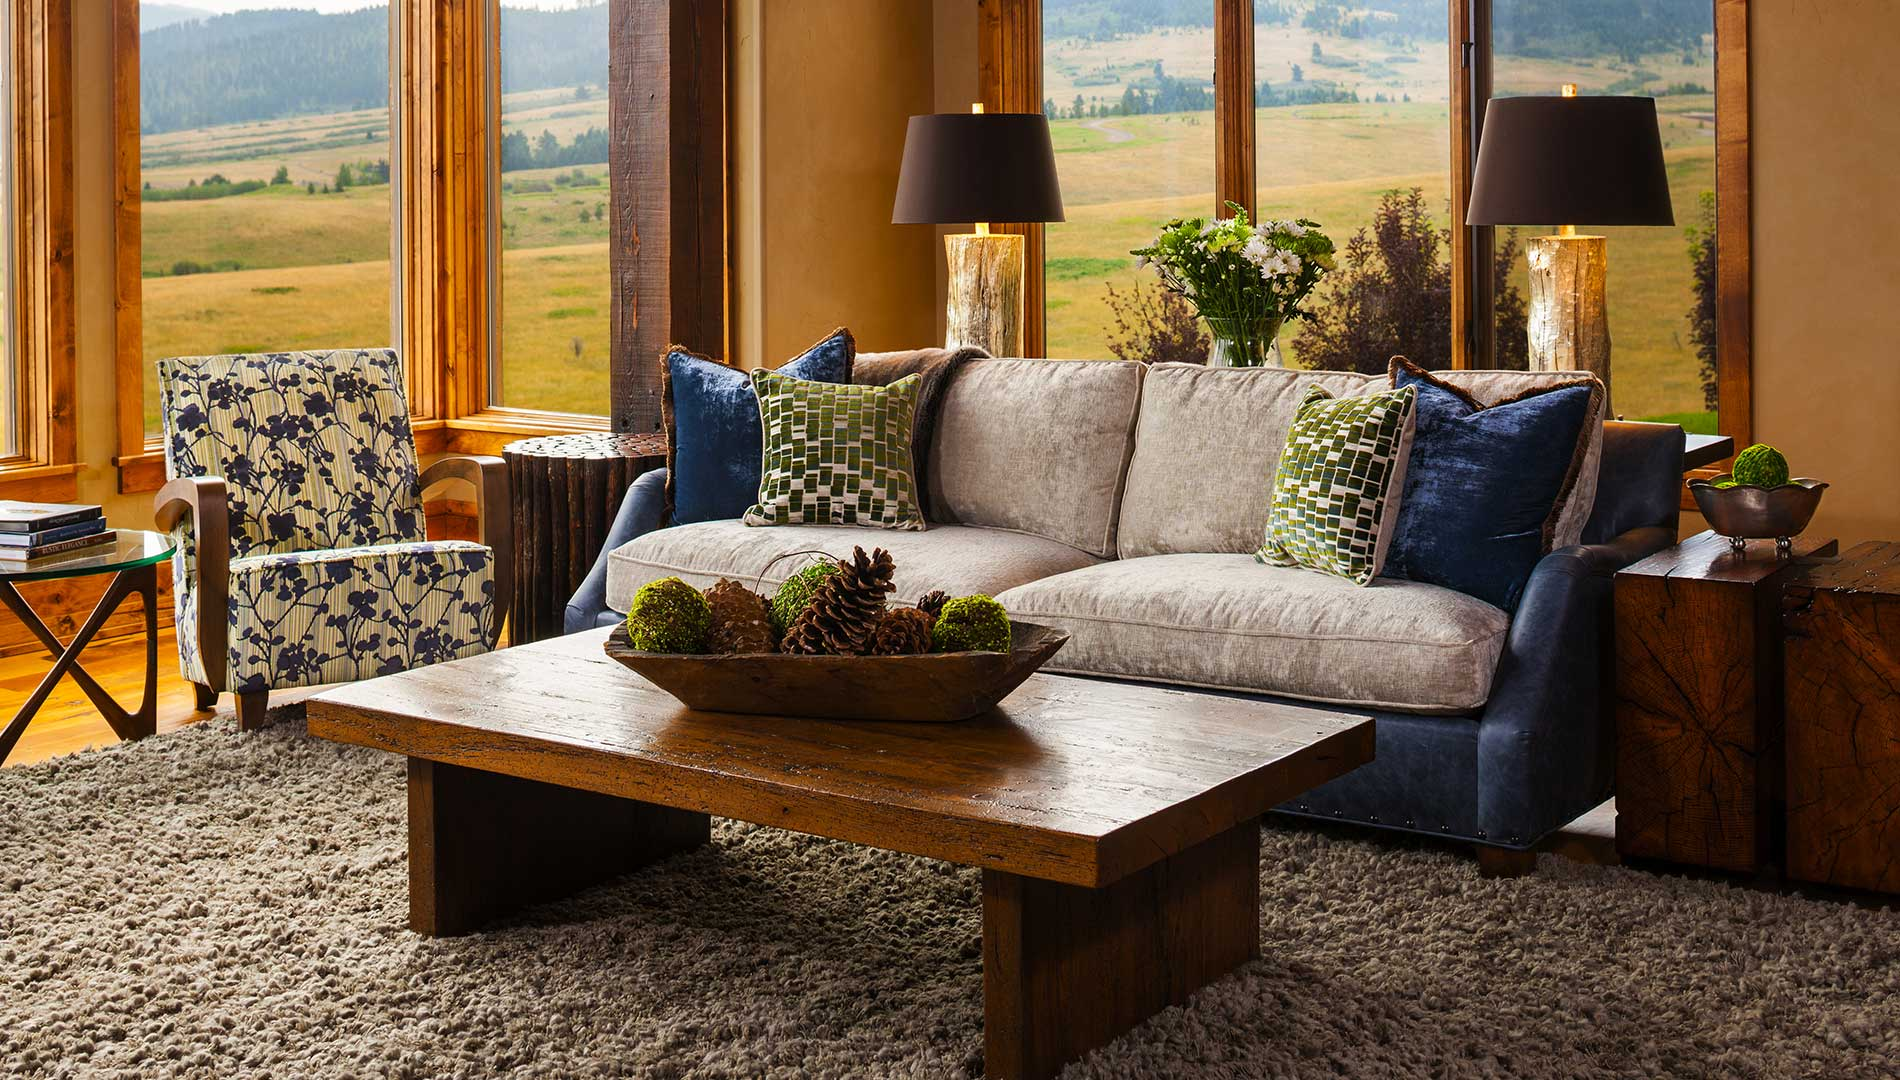 living room at the Bozeman Retreat designed by Elizabeth Robb Interiors